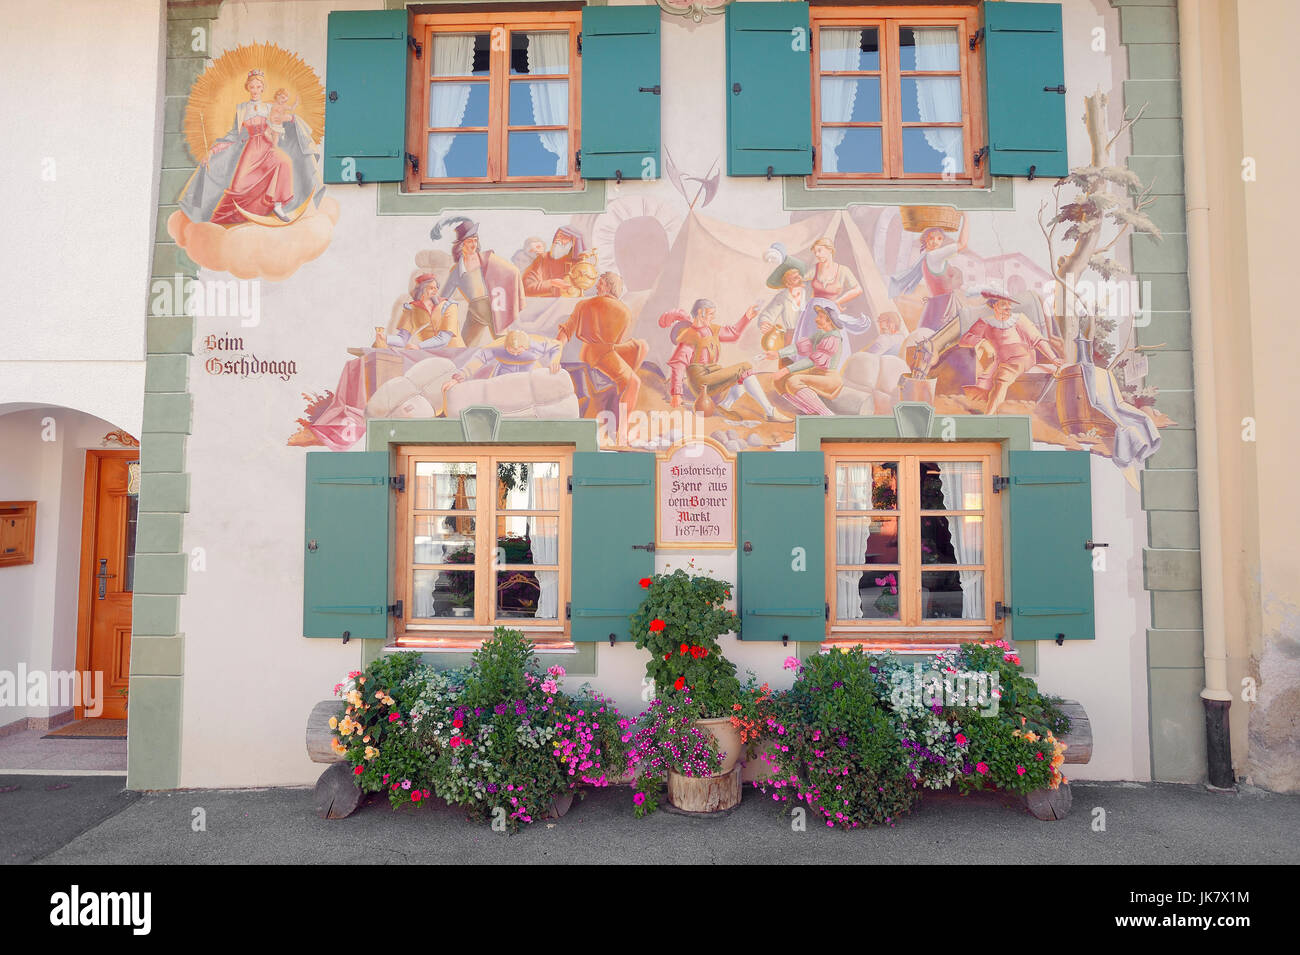 House with paintings, Mittenwald, Werdenfelser Land, Bavaria, Germany | Haus mit Lueftlmalerei, Mittenwald, Werdenfelser - Stock Image